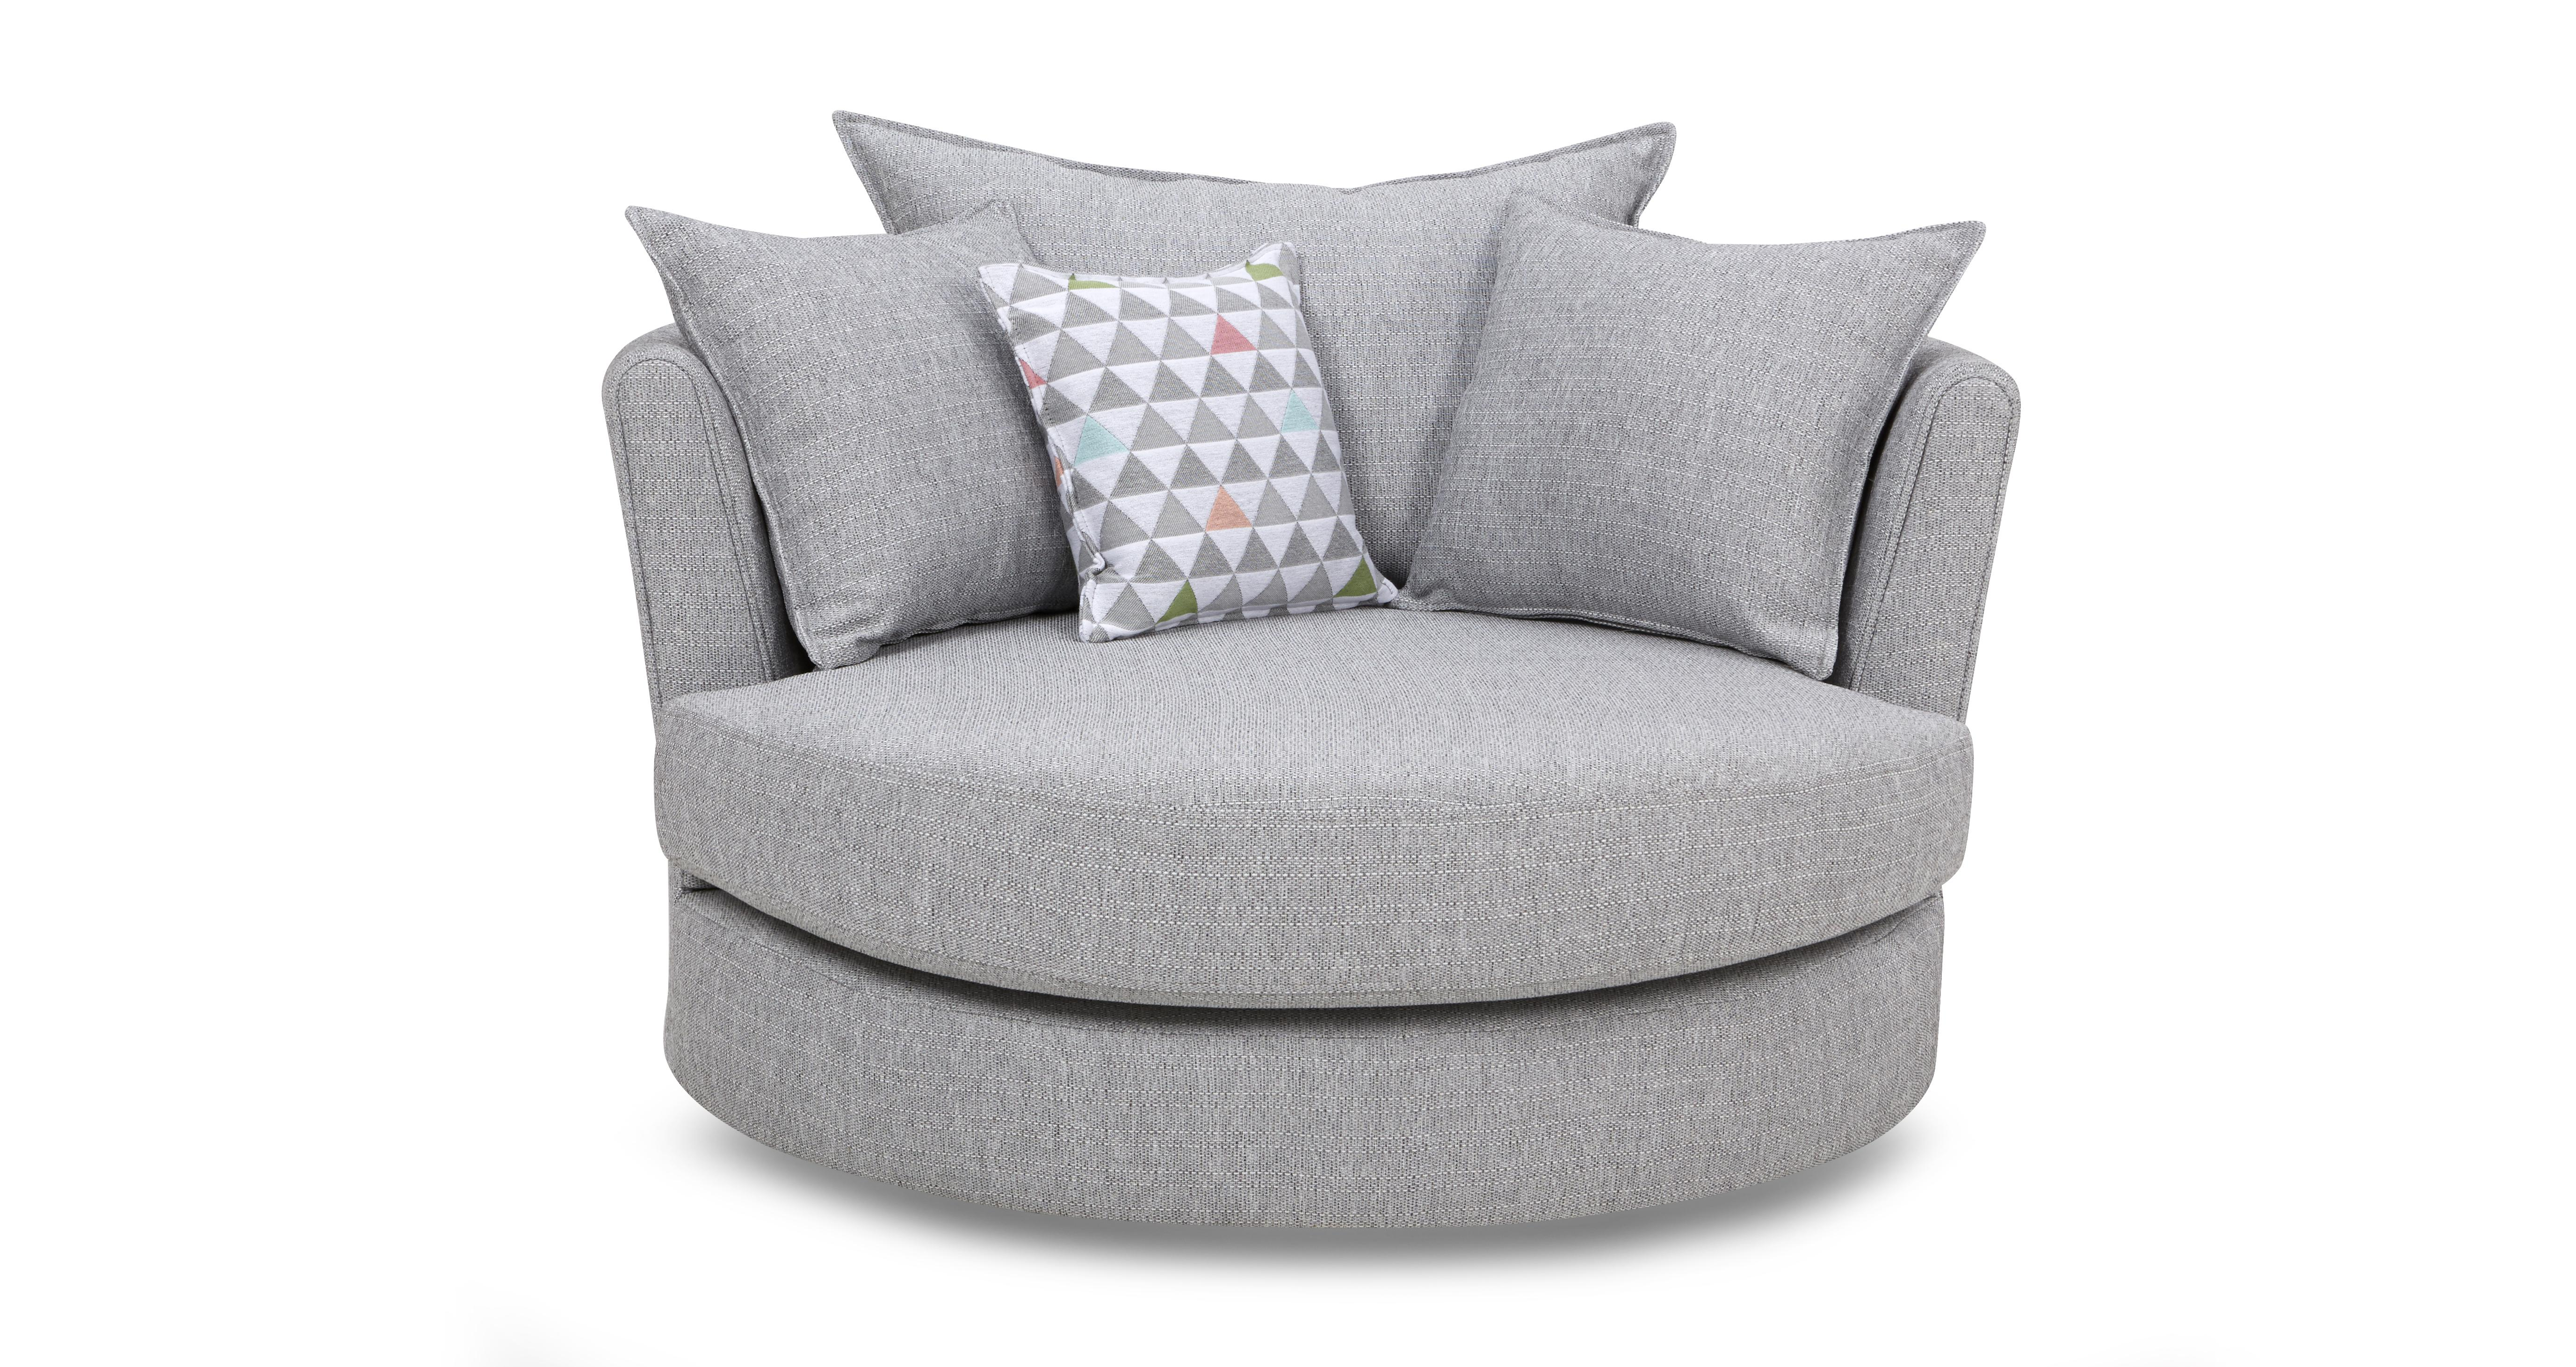 Lydia Large Swivel Chair | DFS Ireland